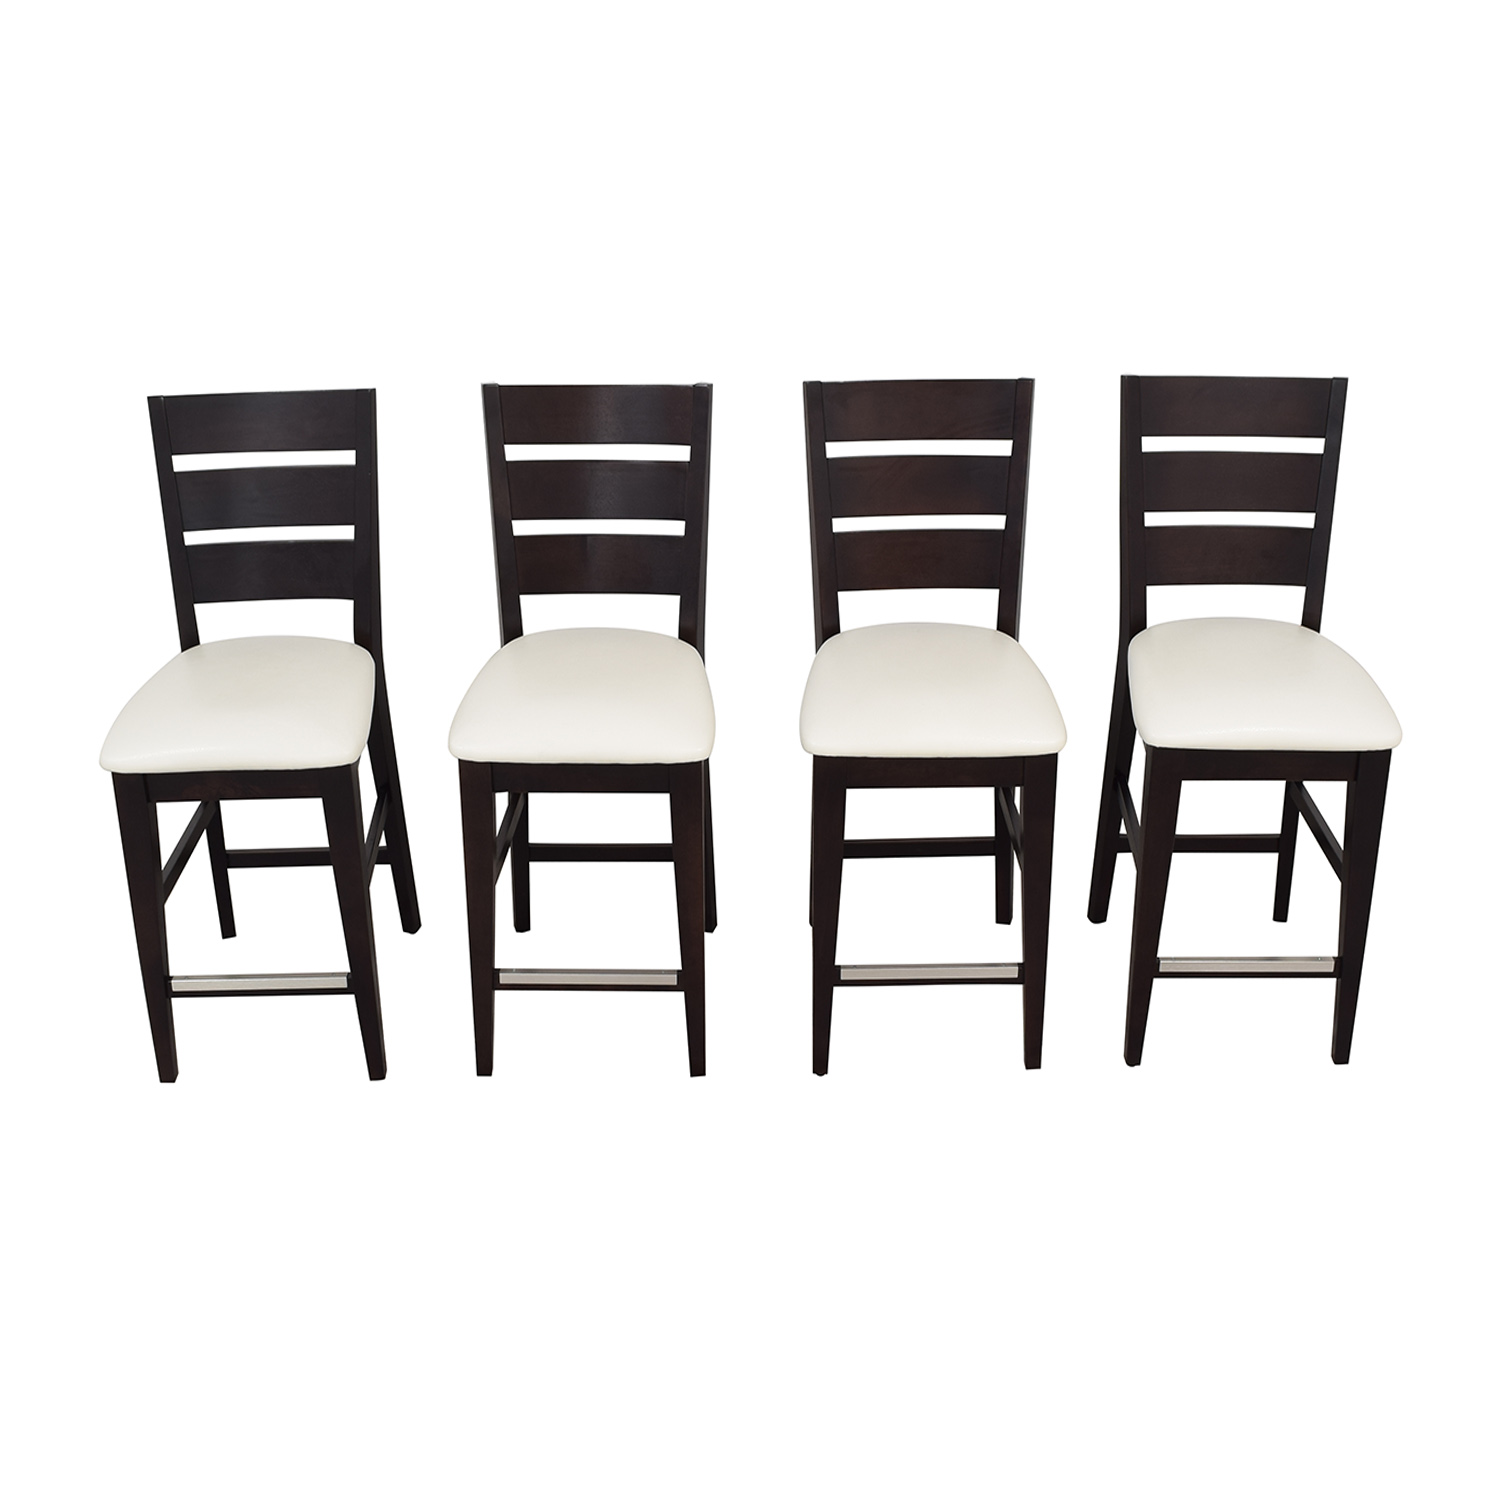 Thomasville Thomasville Upholstered Bar Chairs for sale